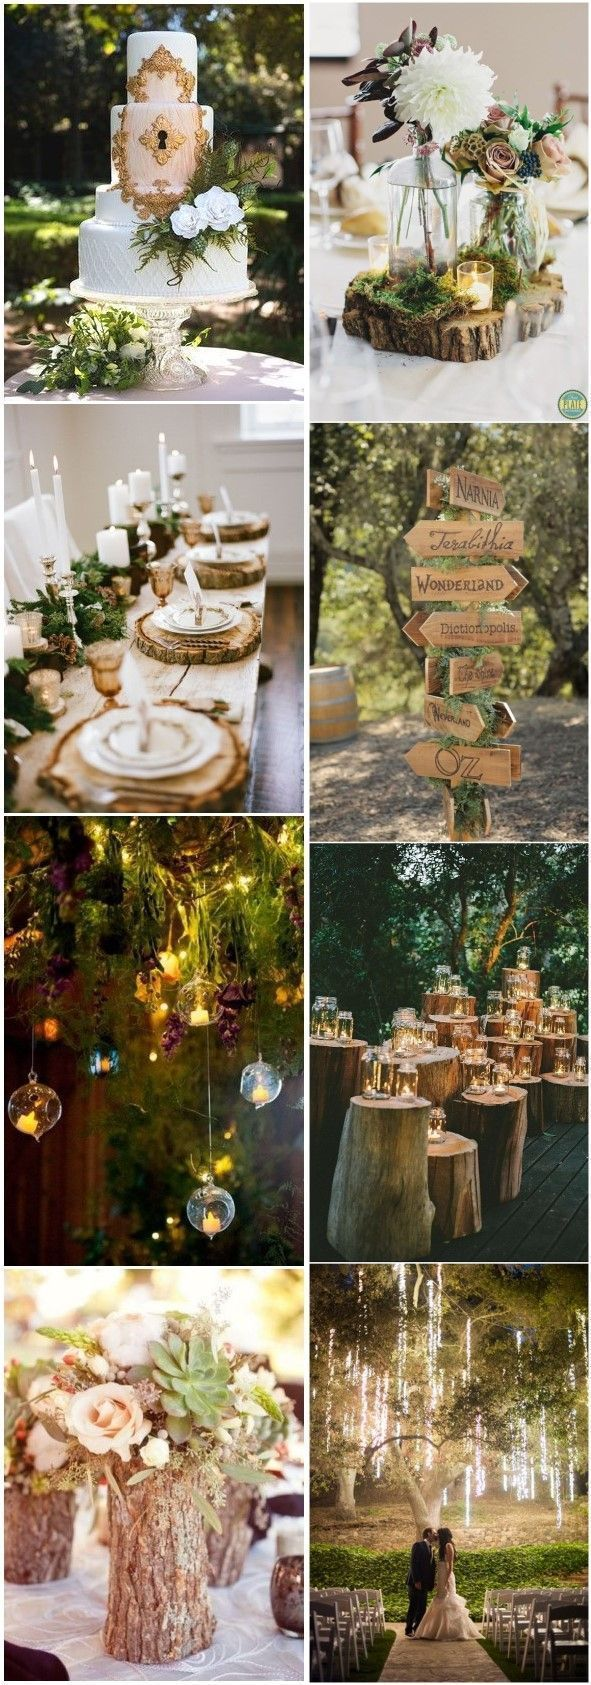 20+ Enchanted Forest Wedding Themed Ideas